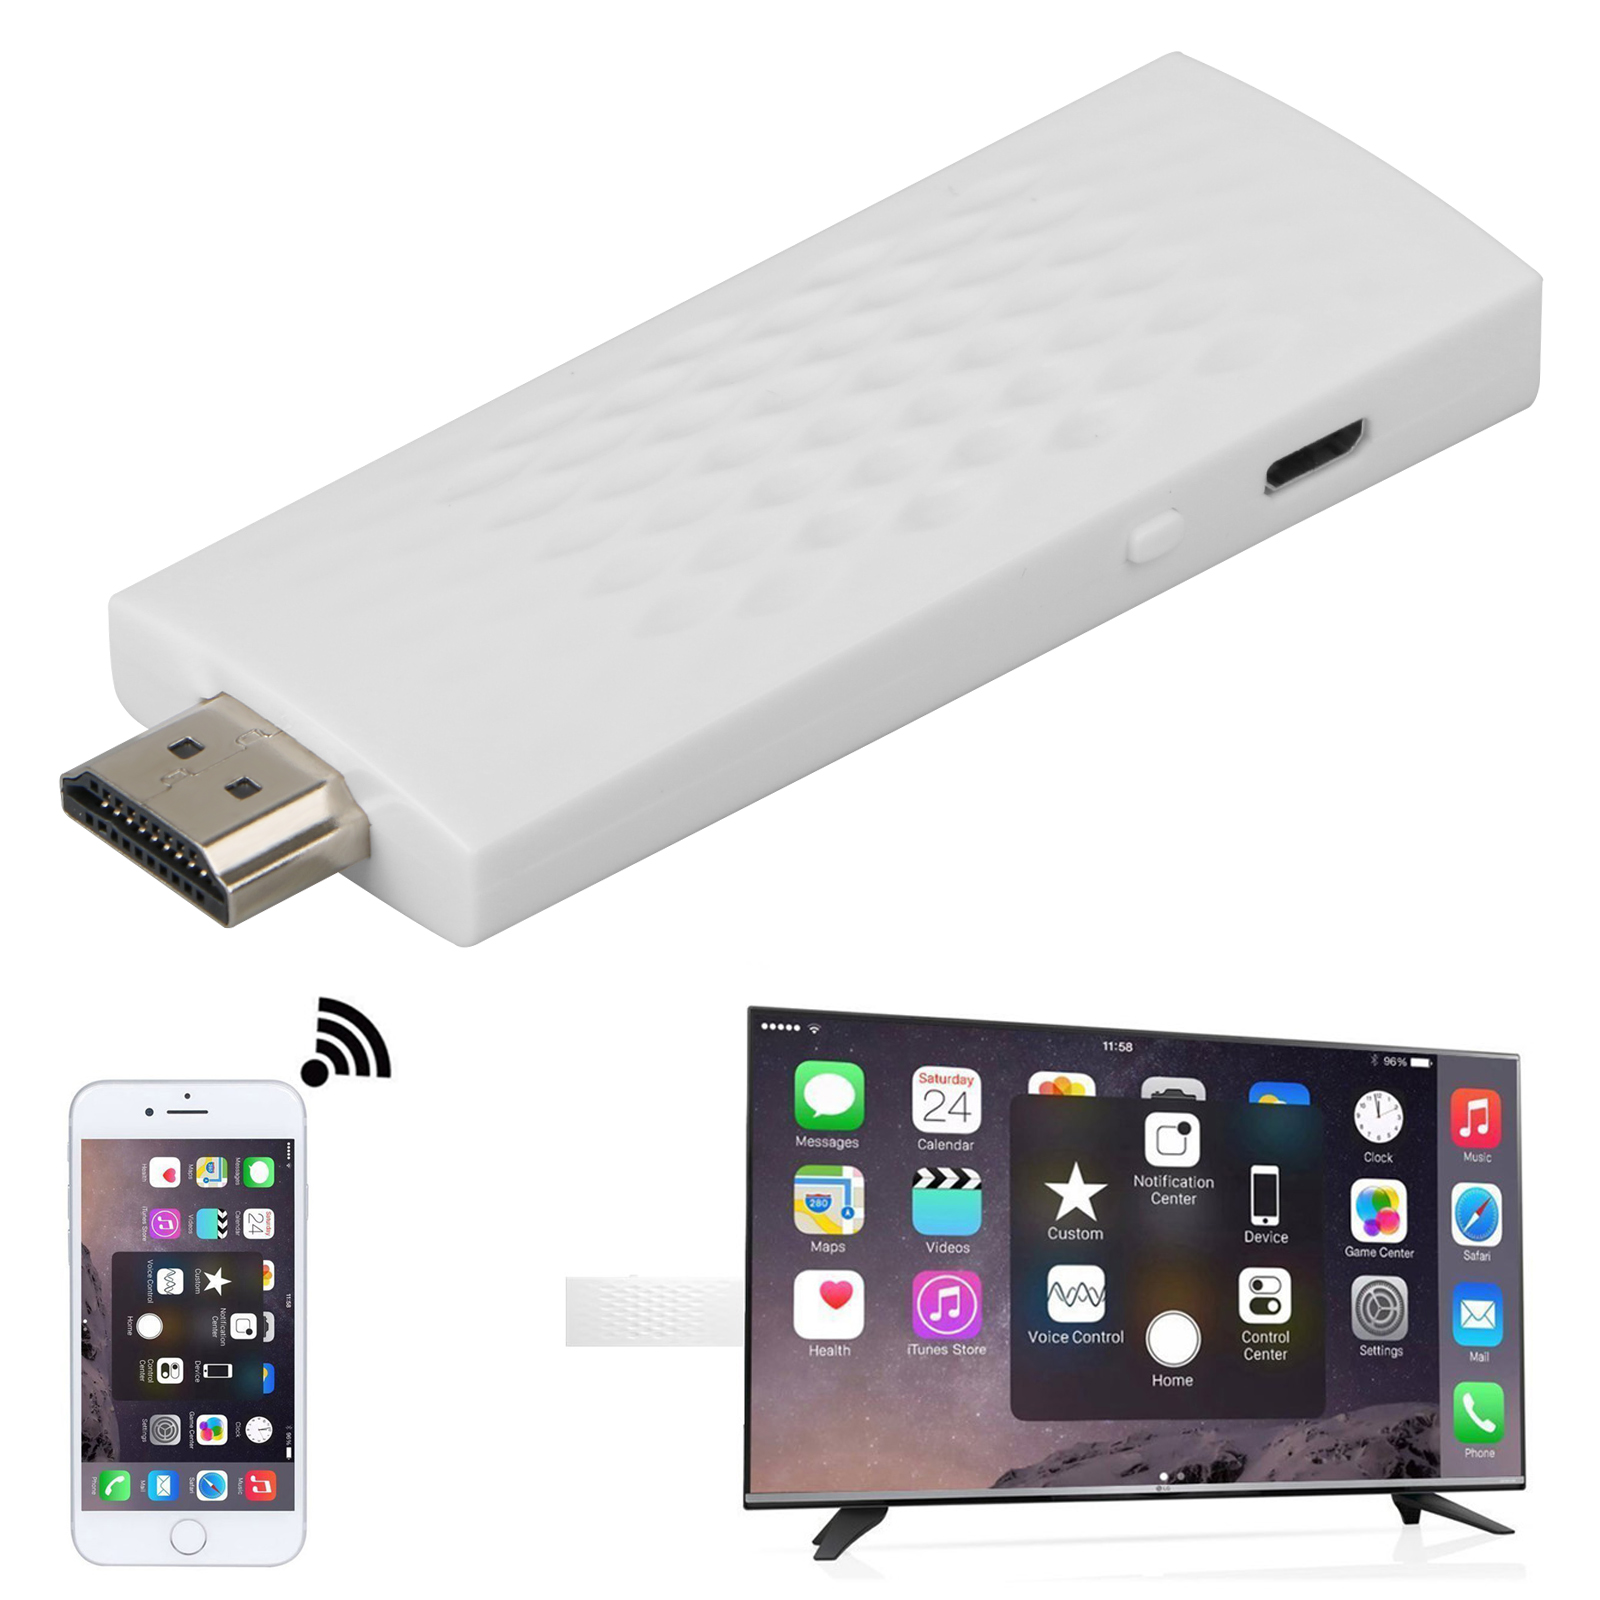 Wireless HDMI 2.4G Wifi Airplay Mirror Display TV Screen Mirroring Video Dongle Adapter for DLNA Airplay iPhone iPad Andorid Phone to TV Monitor Projector Upto 1080P